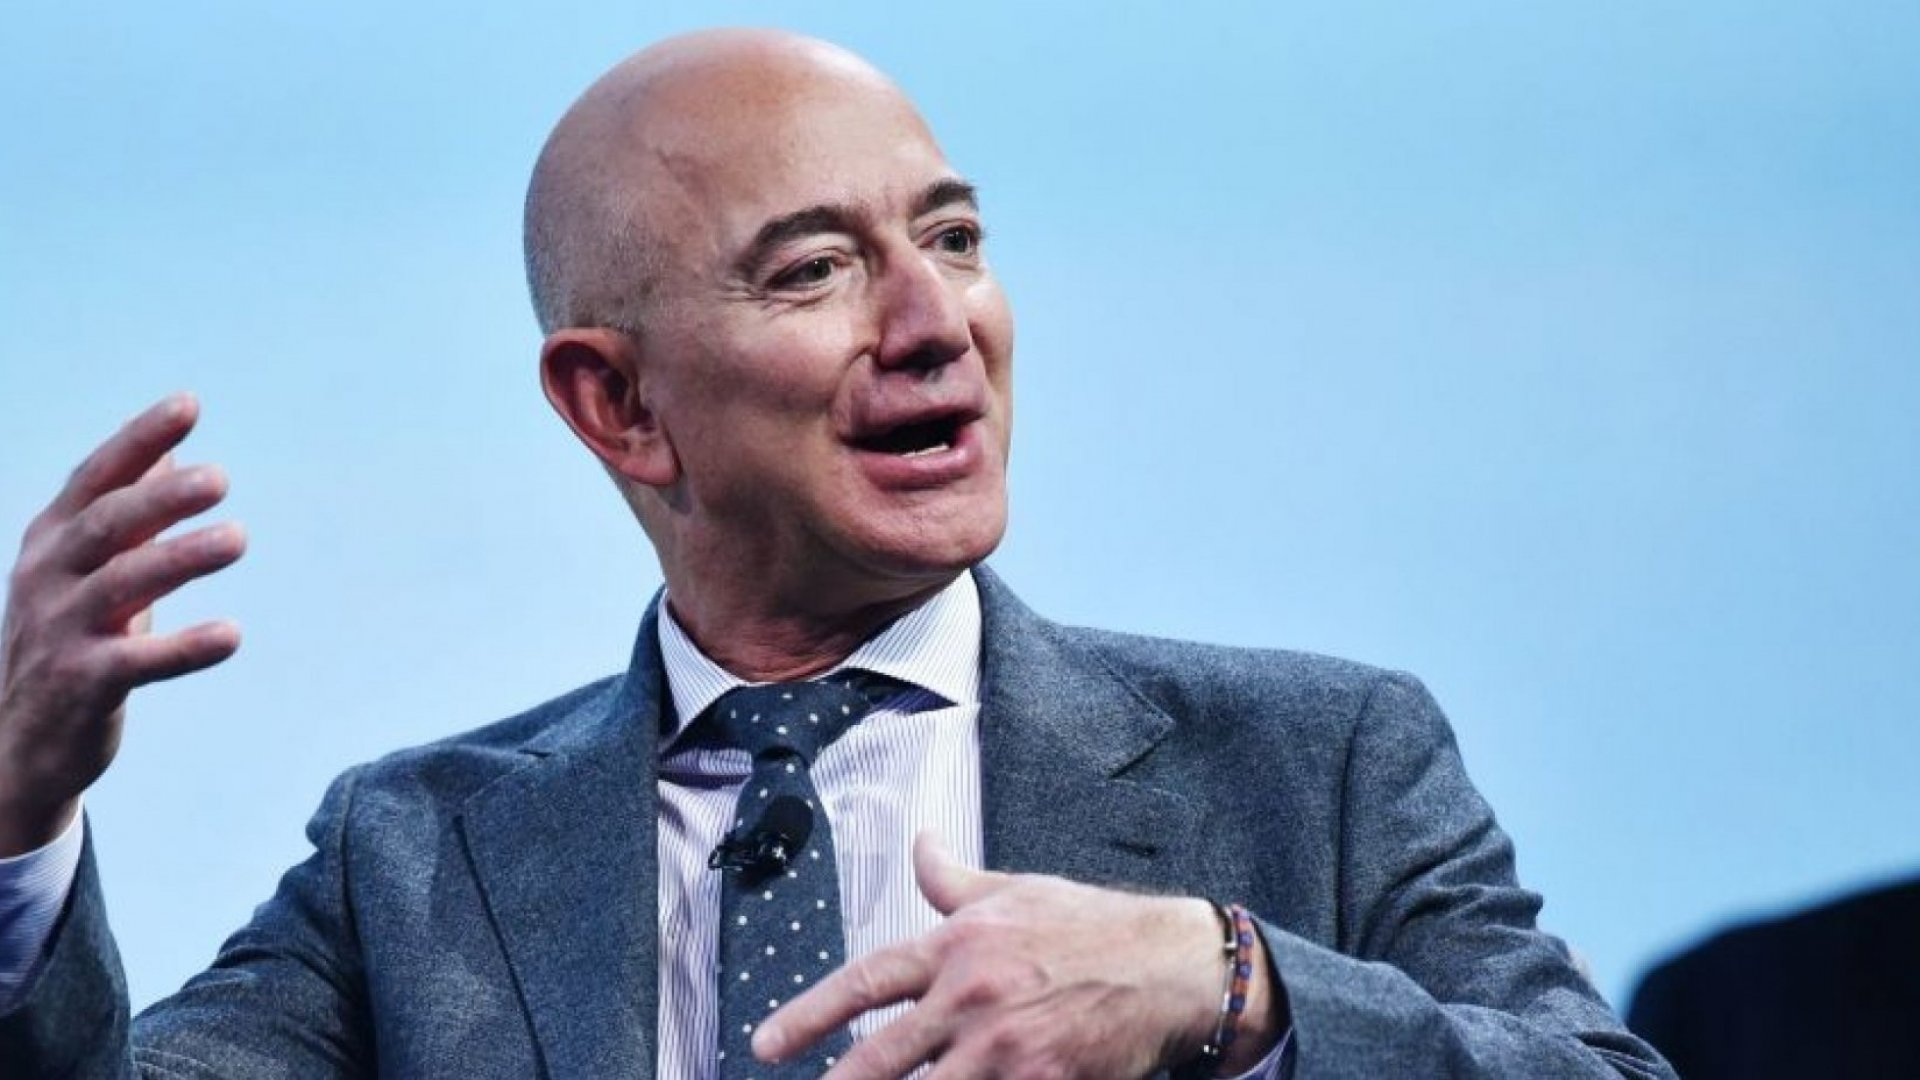 A better way for billionaires who want to make massive donations to benefit society